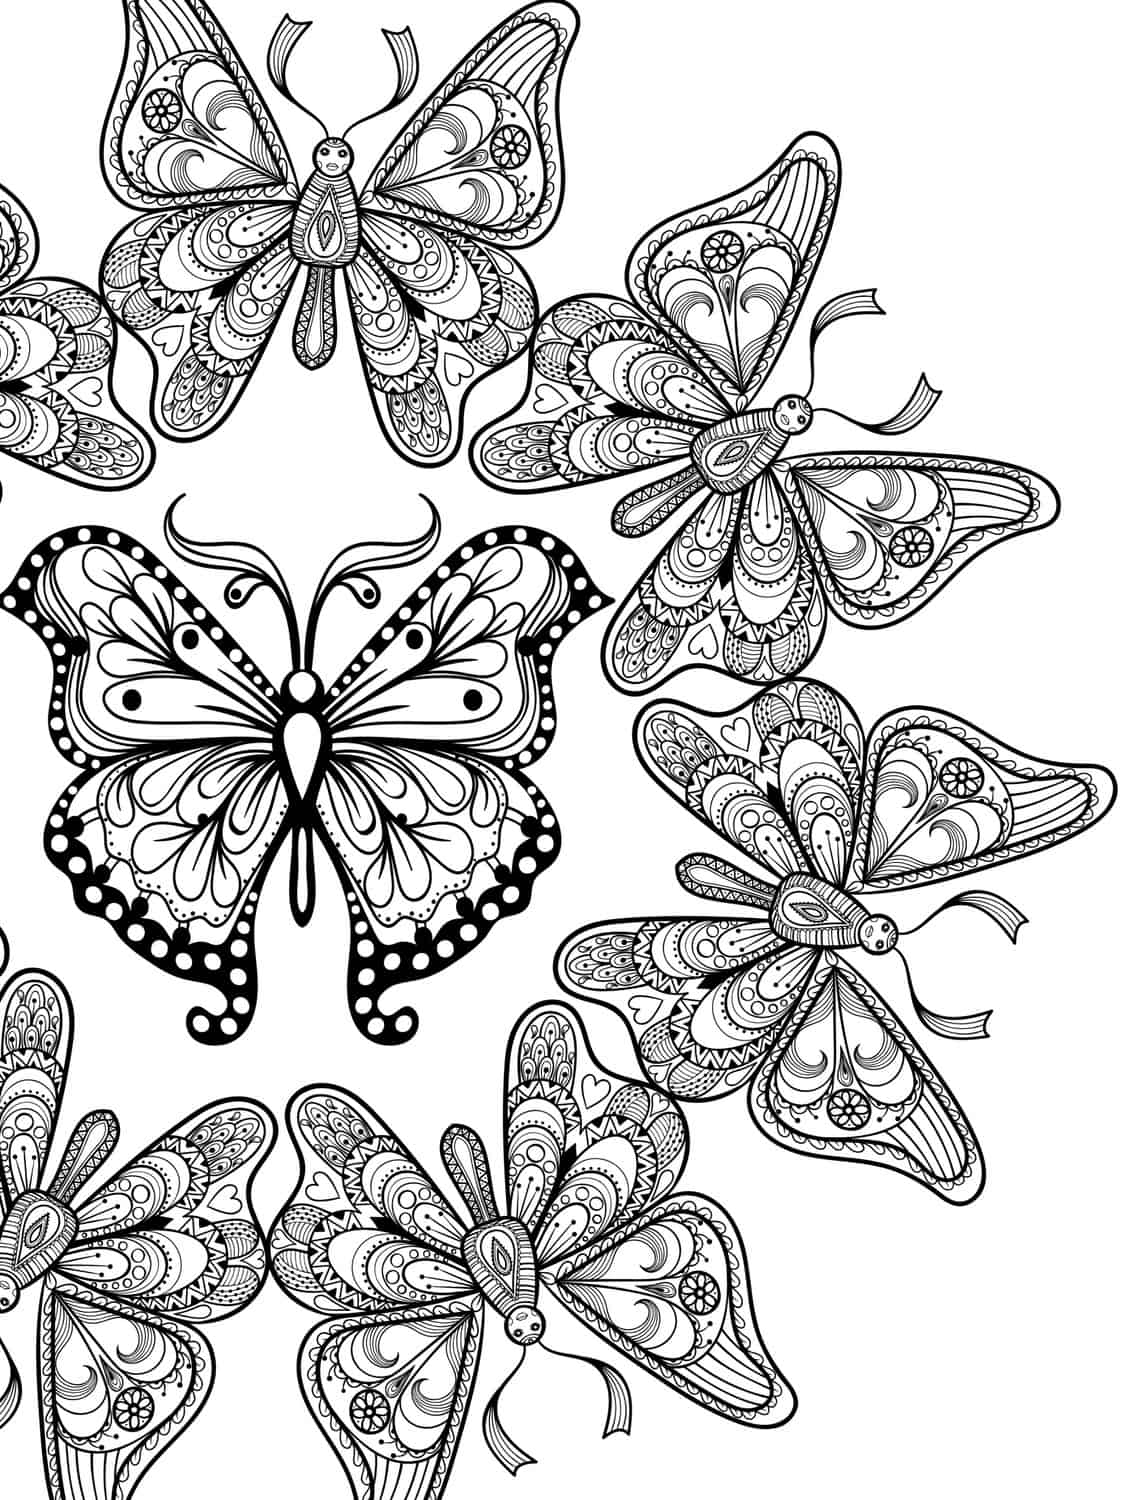 adult coloring printable pages - photo#30